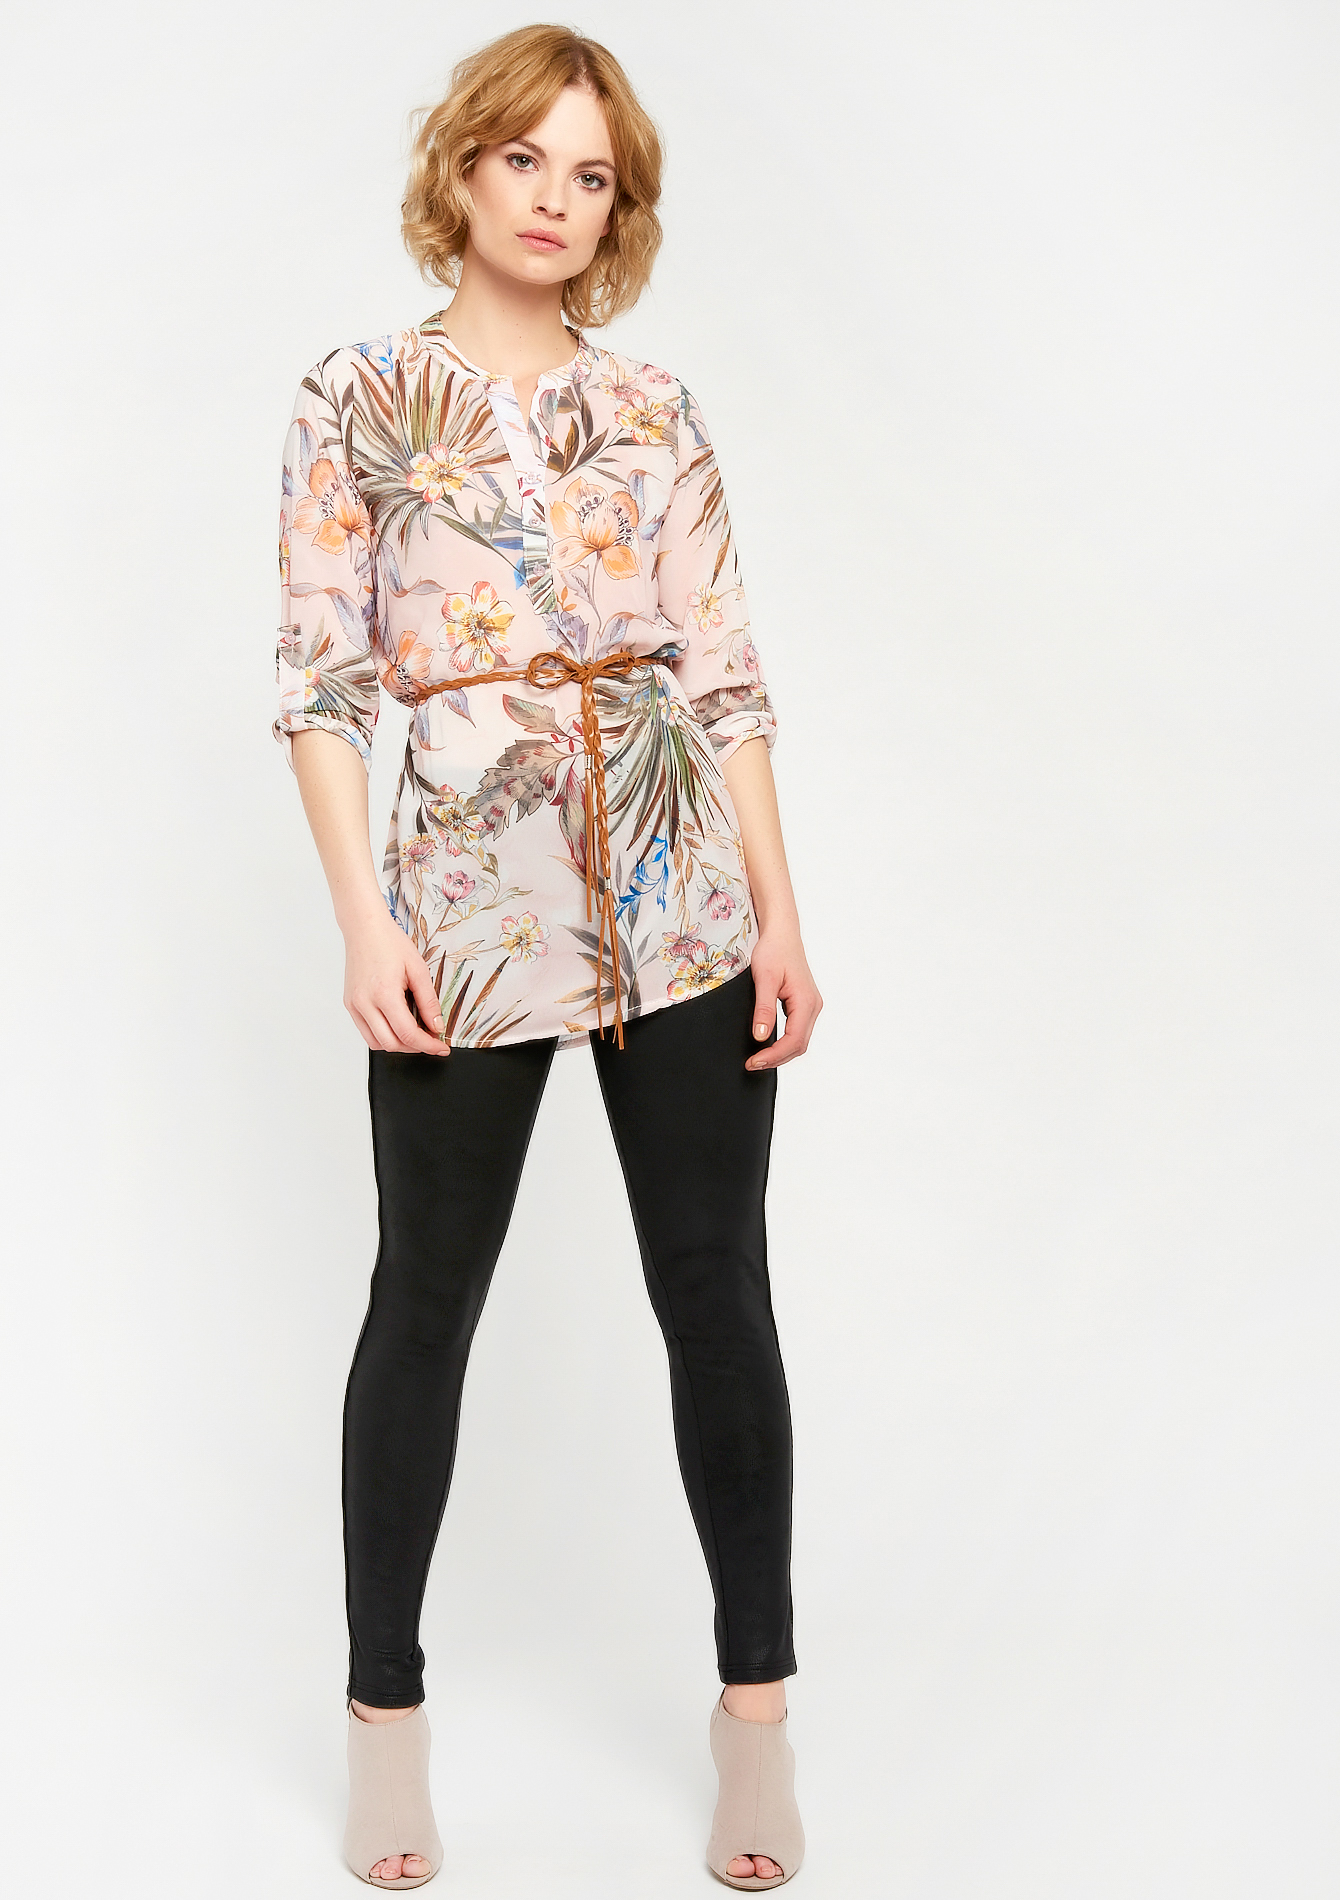 Blouse with exotic print, Mao-collar - WHITE ALYSSUM - 05700348_2502